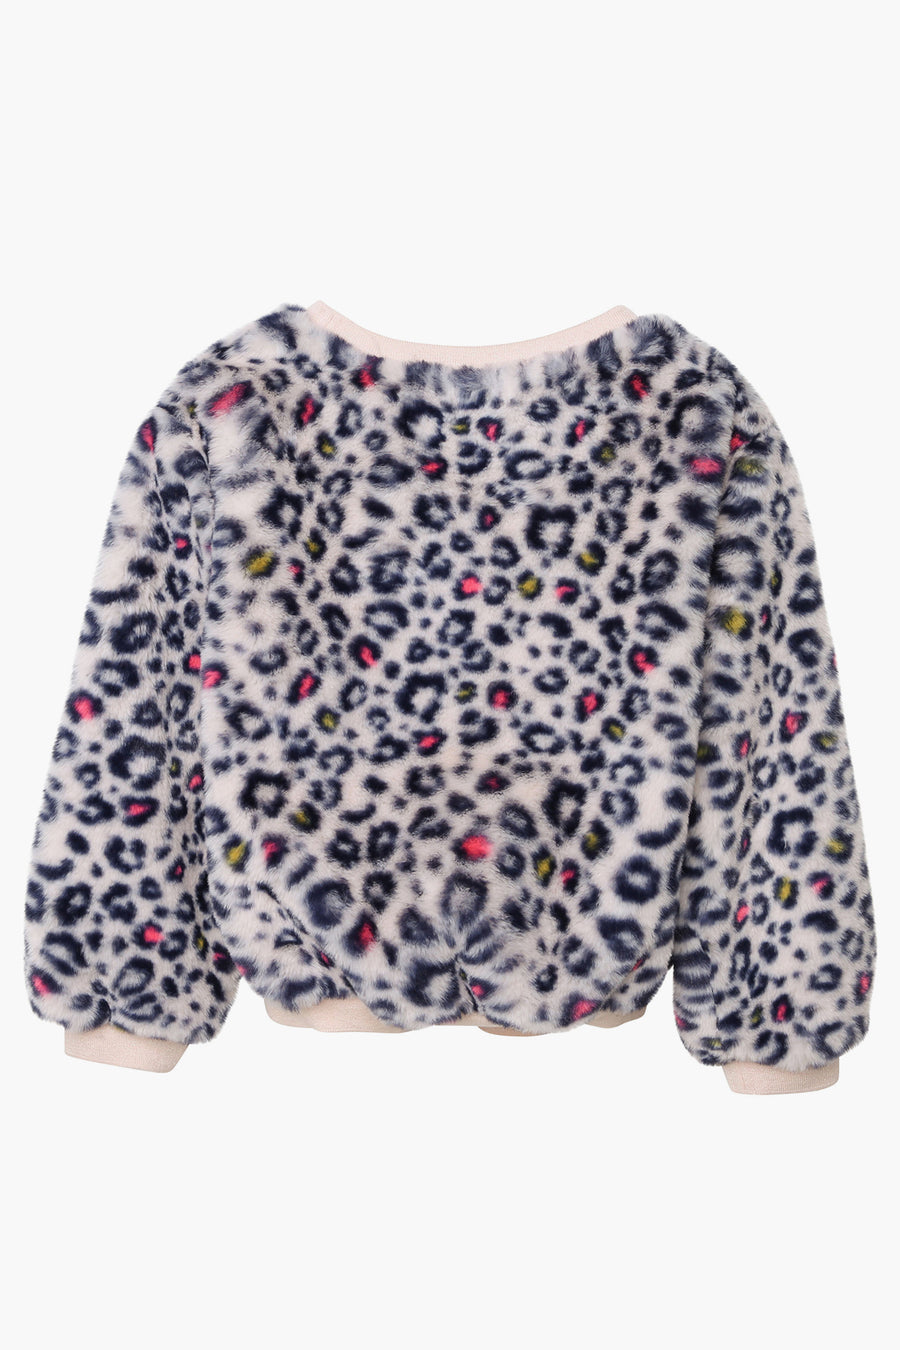 Billieblush Leopard Print Girls Sweatshirt